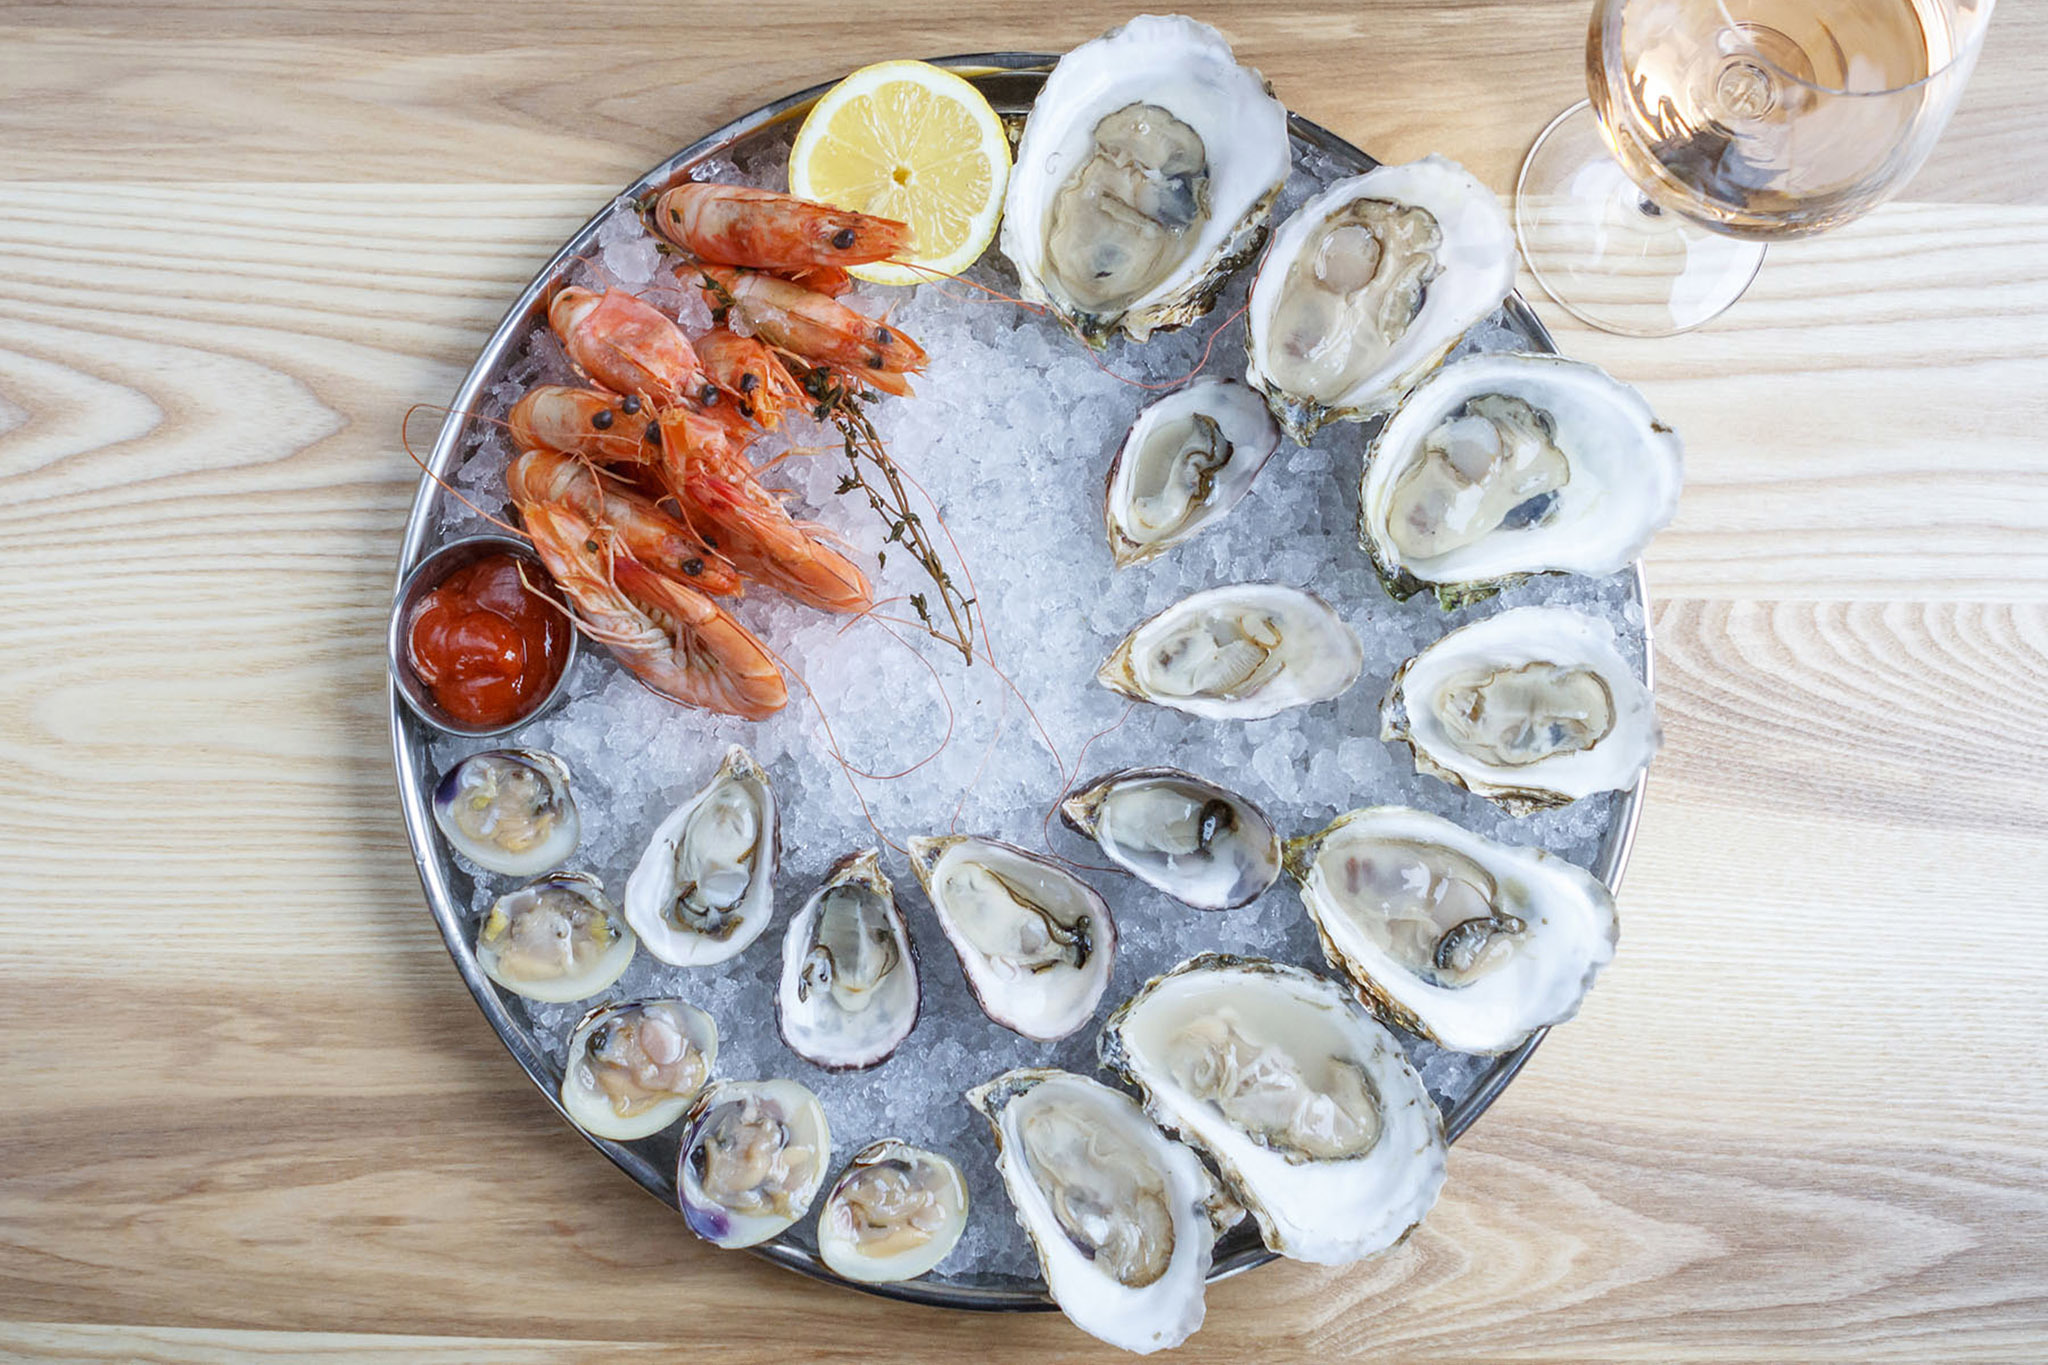 The best oyster bars in Boston